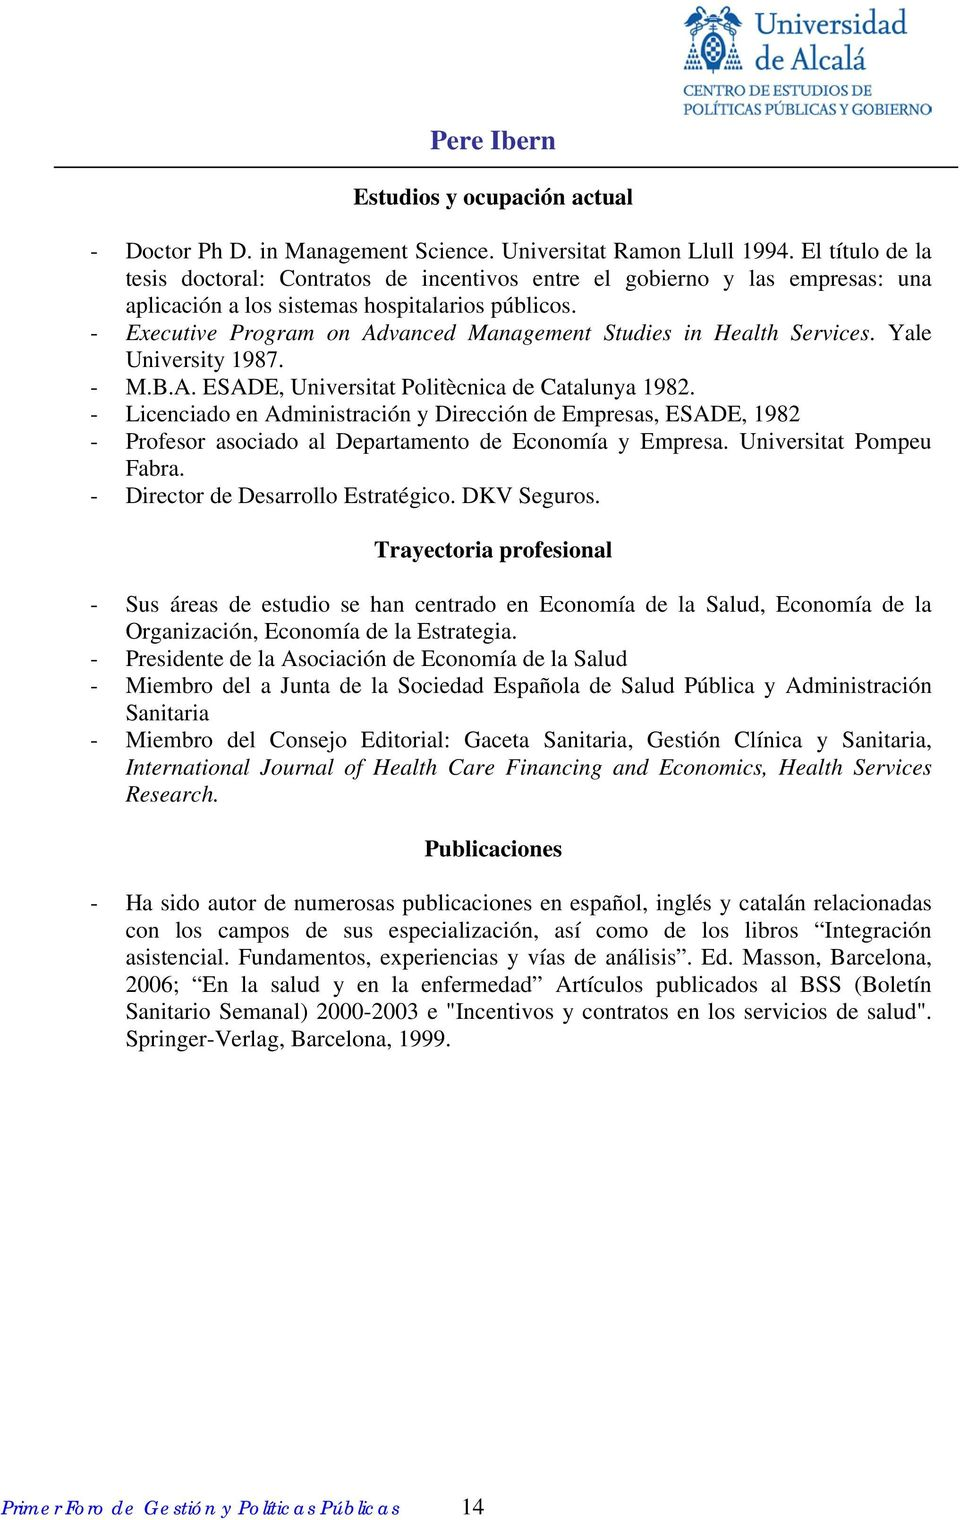 - Executive Program on Advanced Management Studies in Health Services. Yale University 1987. - M.B.A. ESADE, Universitat Politècnica de Catalunya 1982.